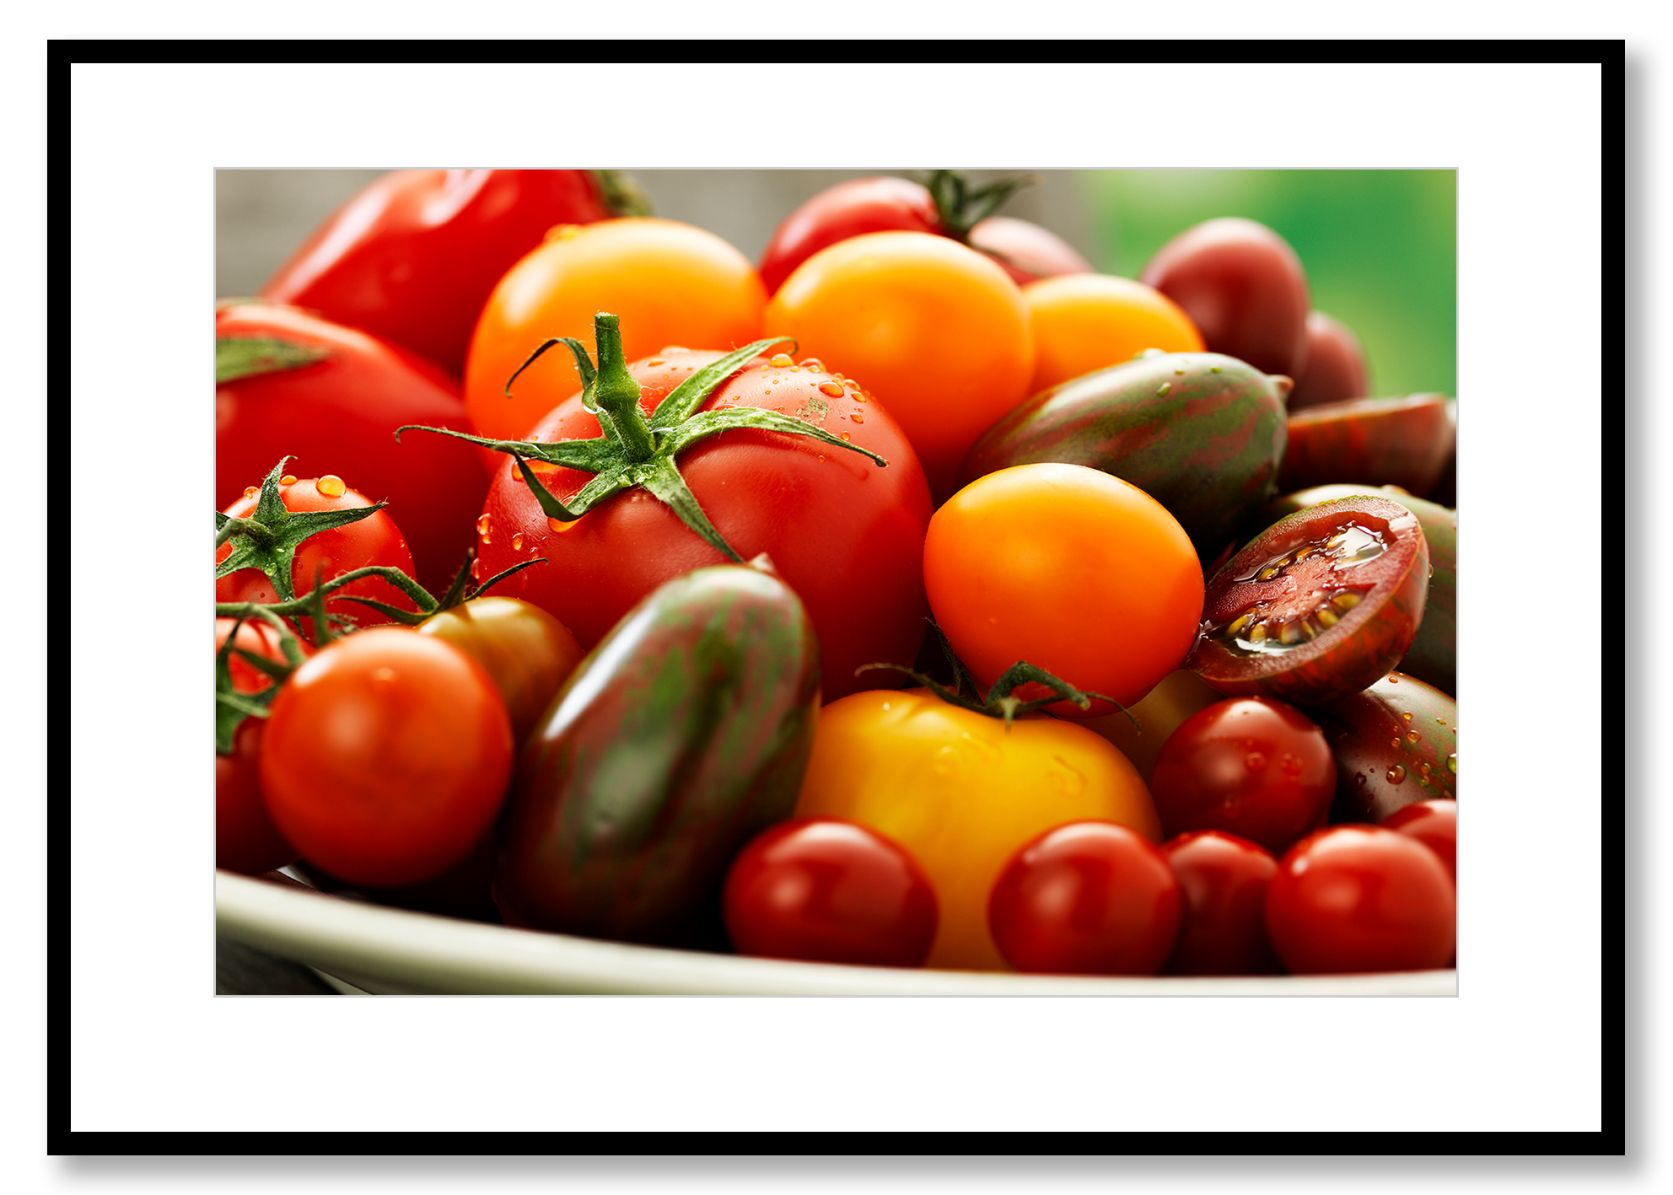 Tomatoes. Food Art. Prints for sale. Photo by Fredrik Rege